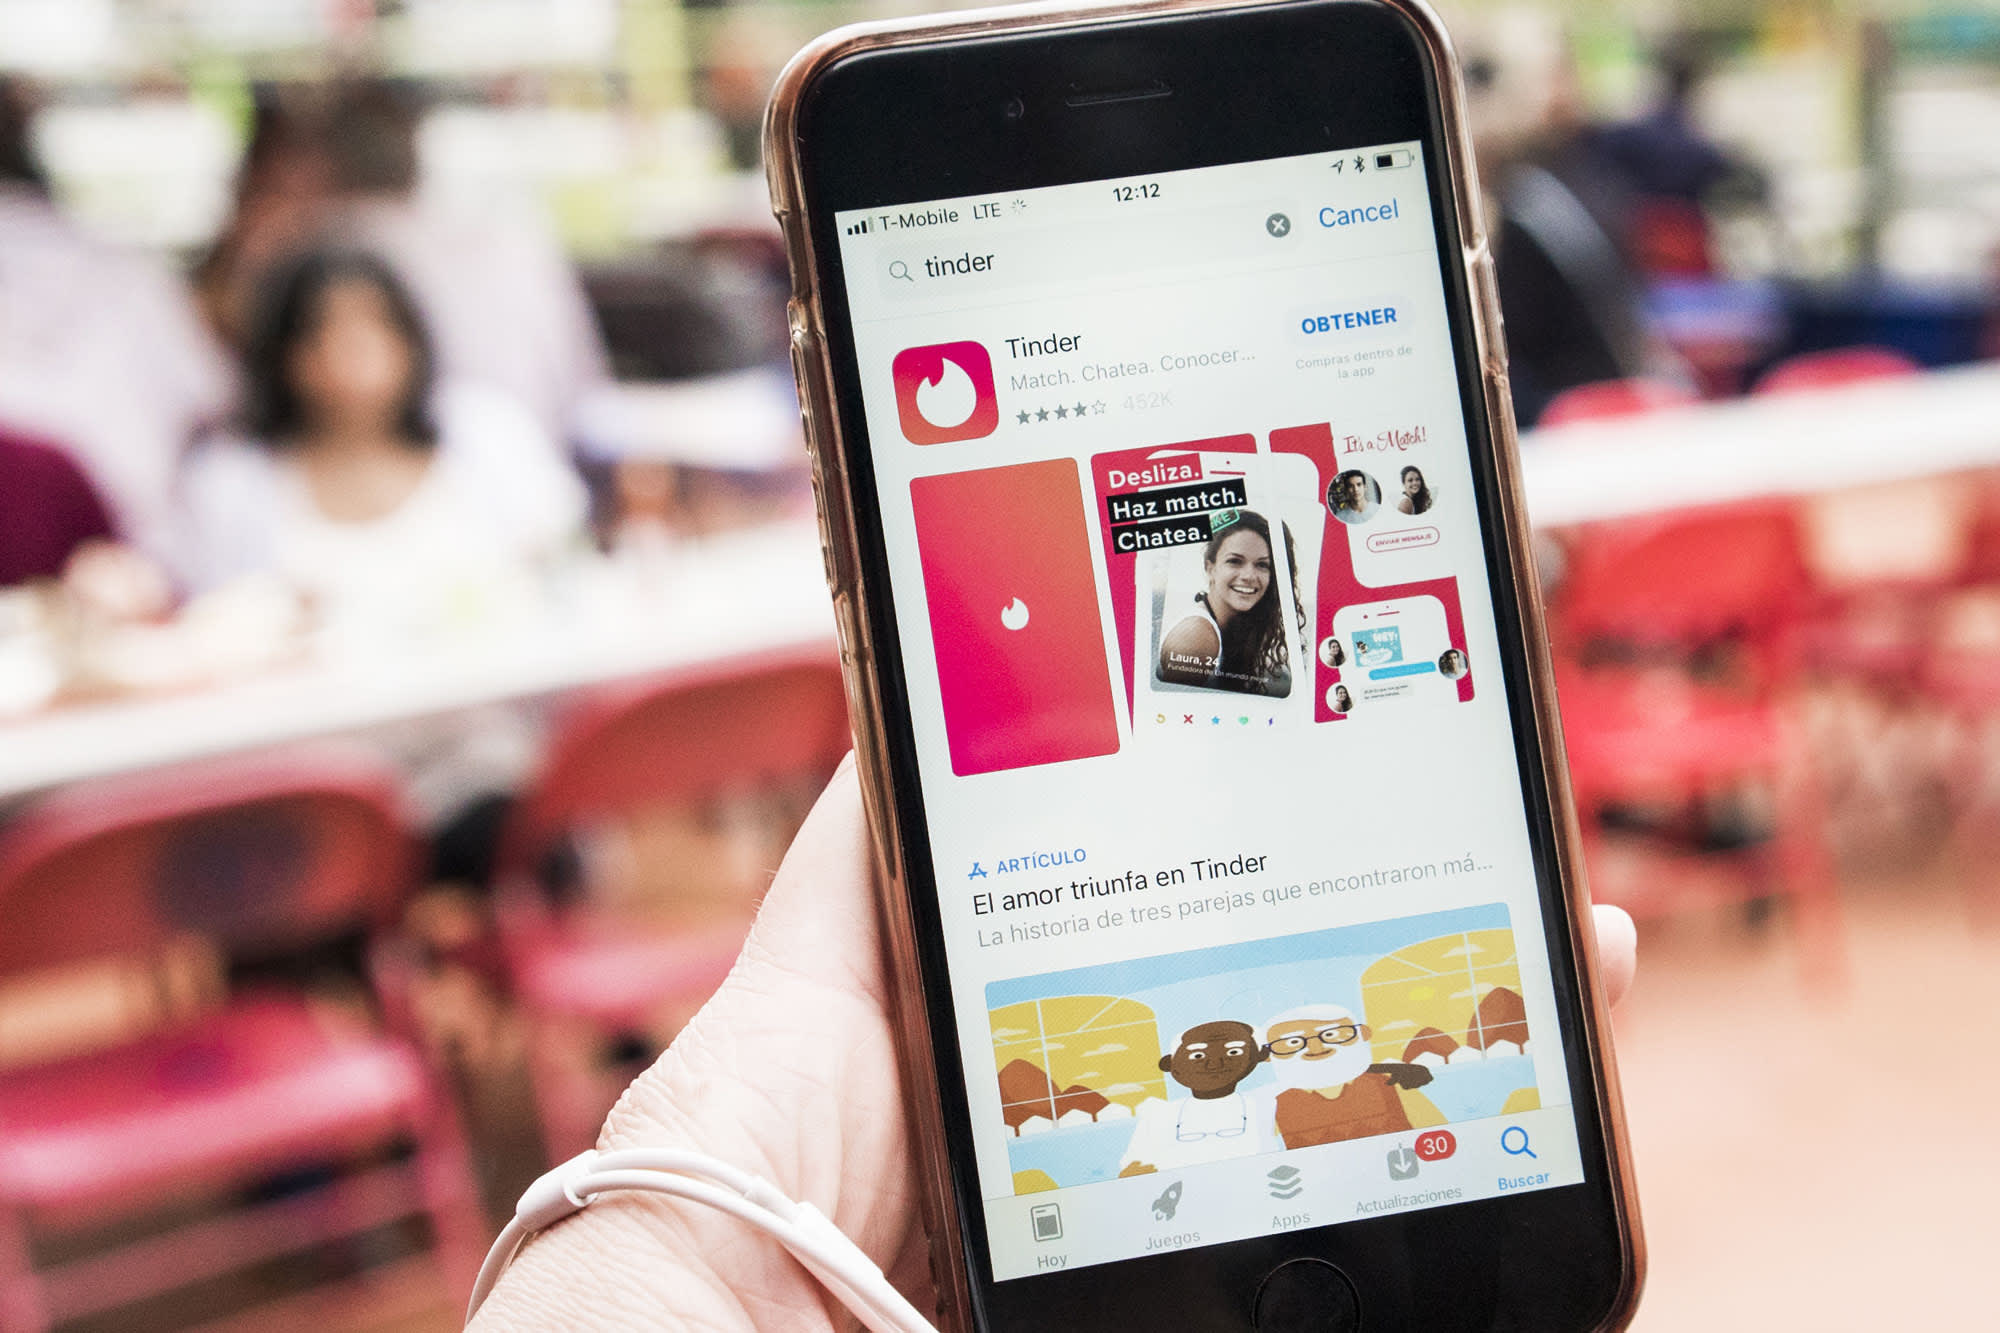 Harvard study finds people who use dating apps such as Tinder are more likely to have eating disorders